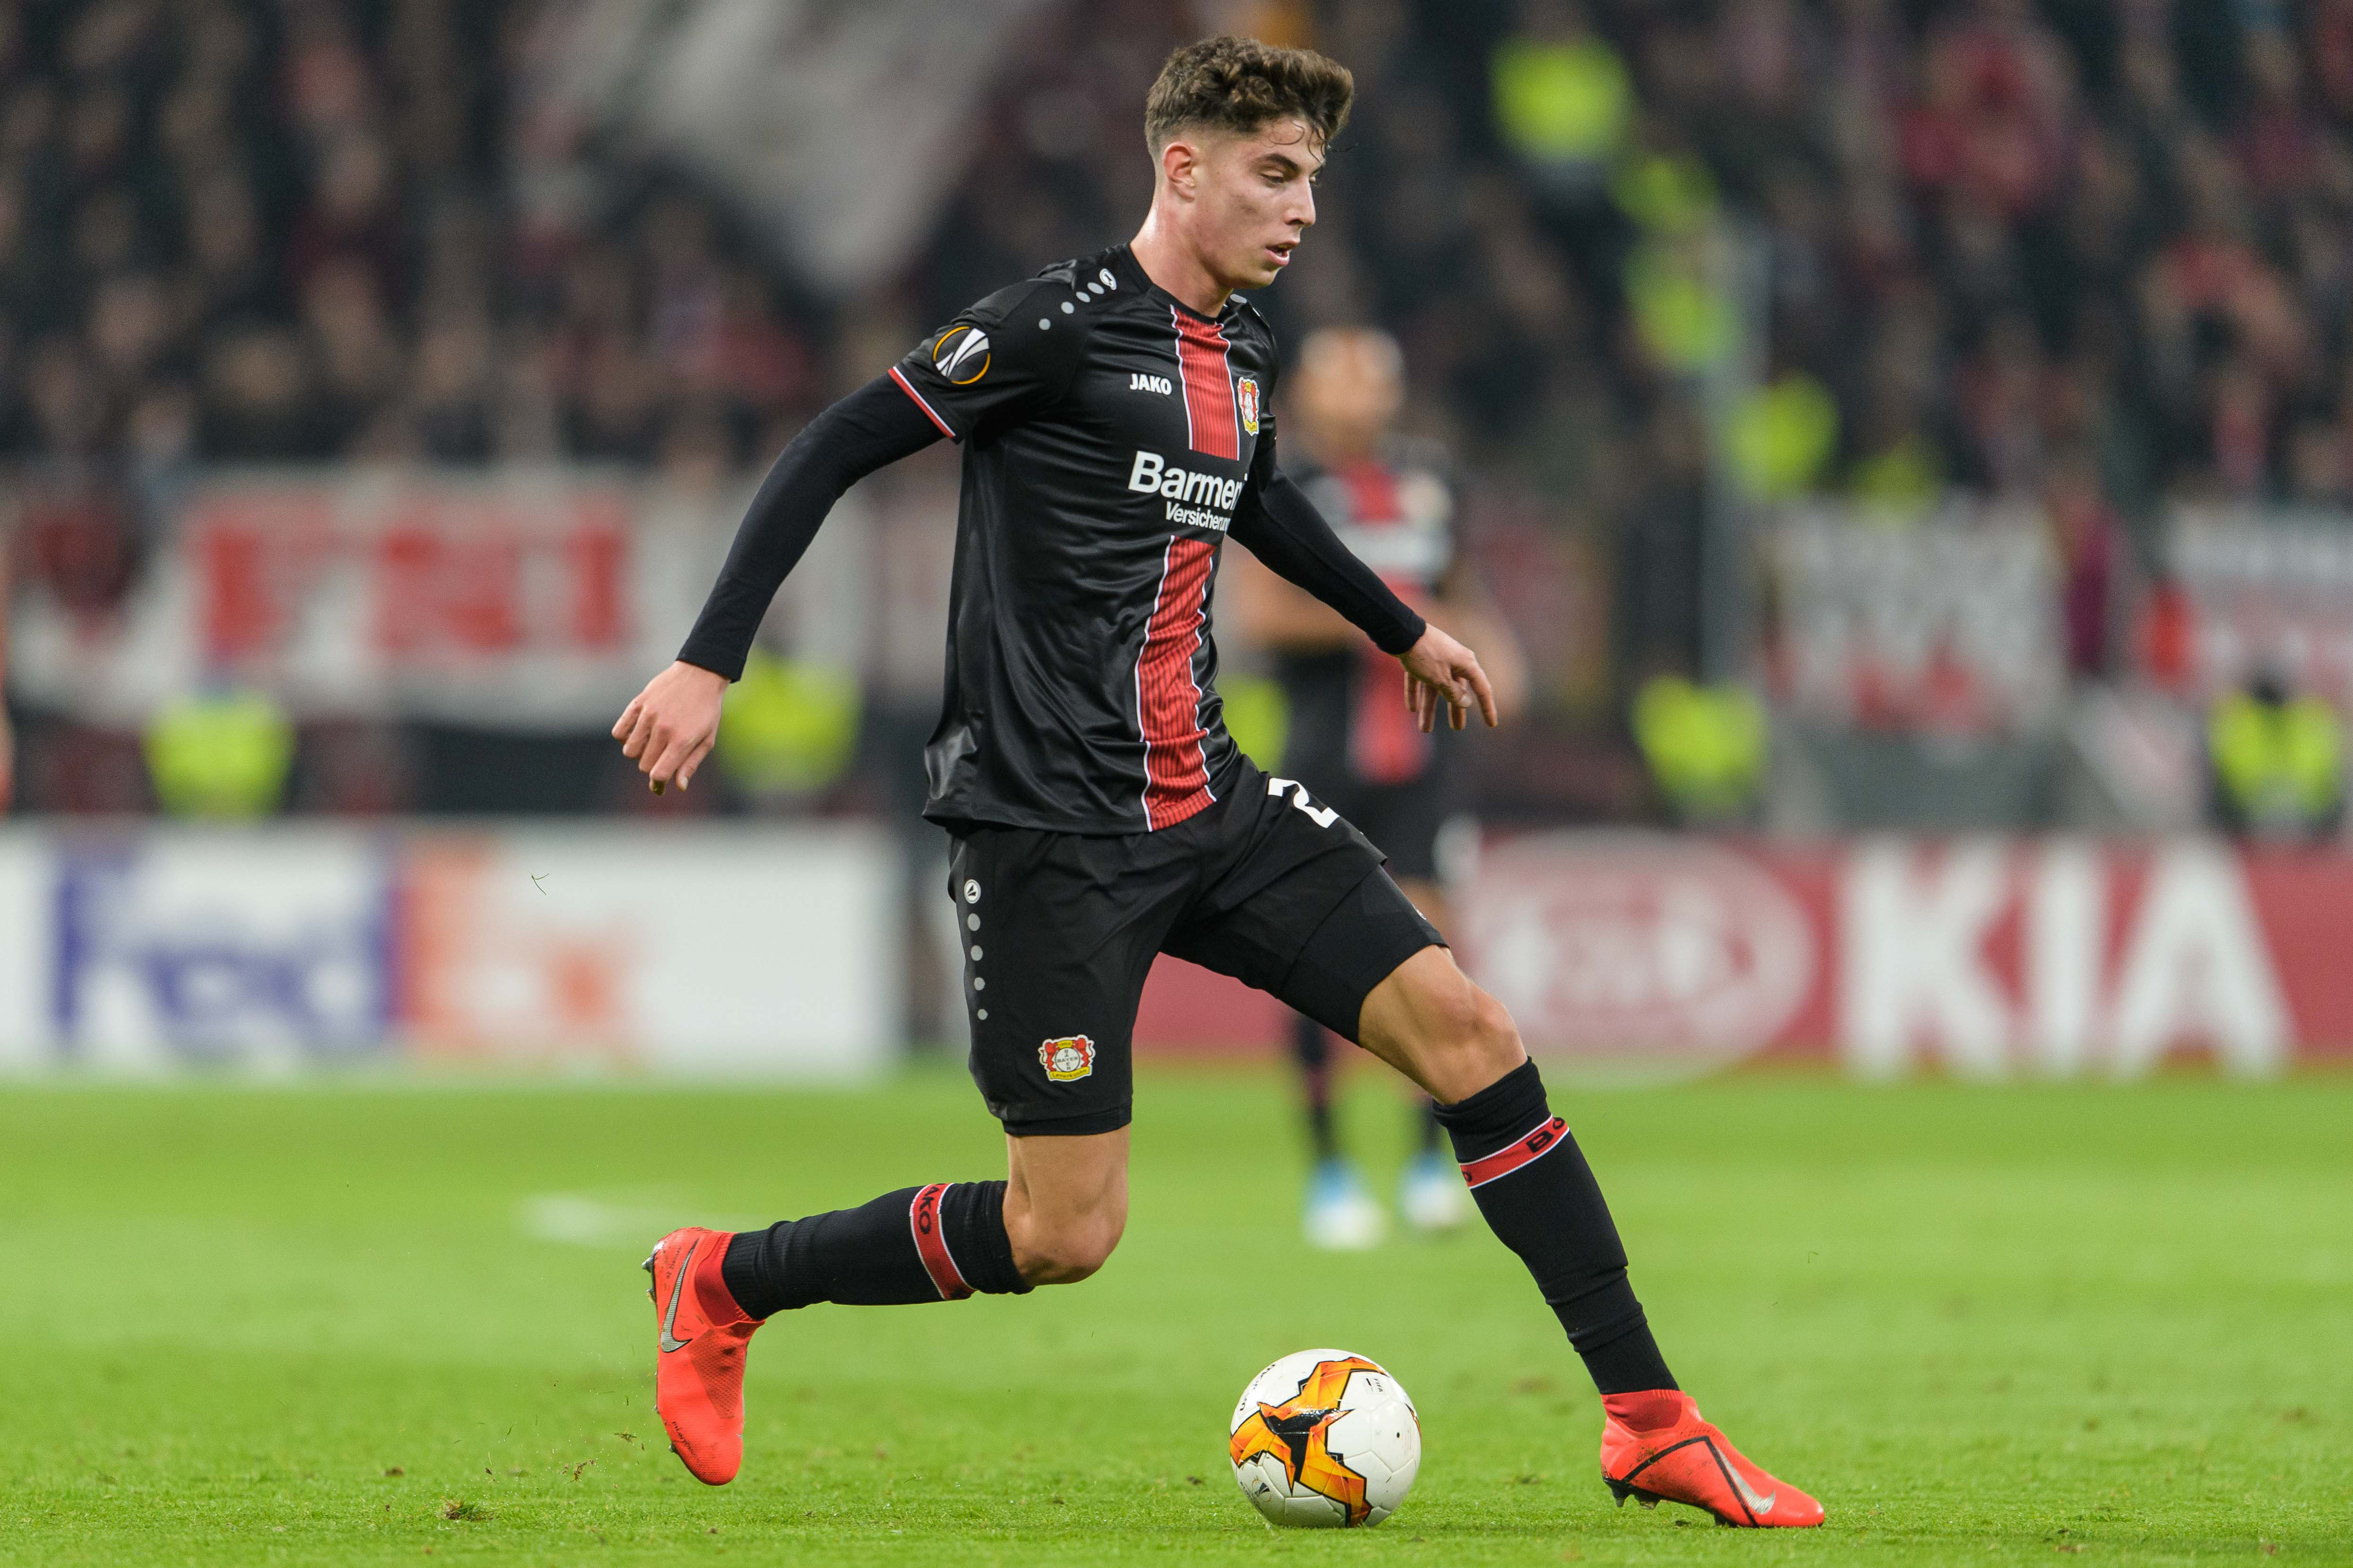 Havertz wants to join Chelsea (Photo by Jörg Schüler/Getty Images)